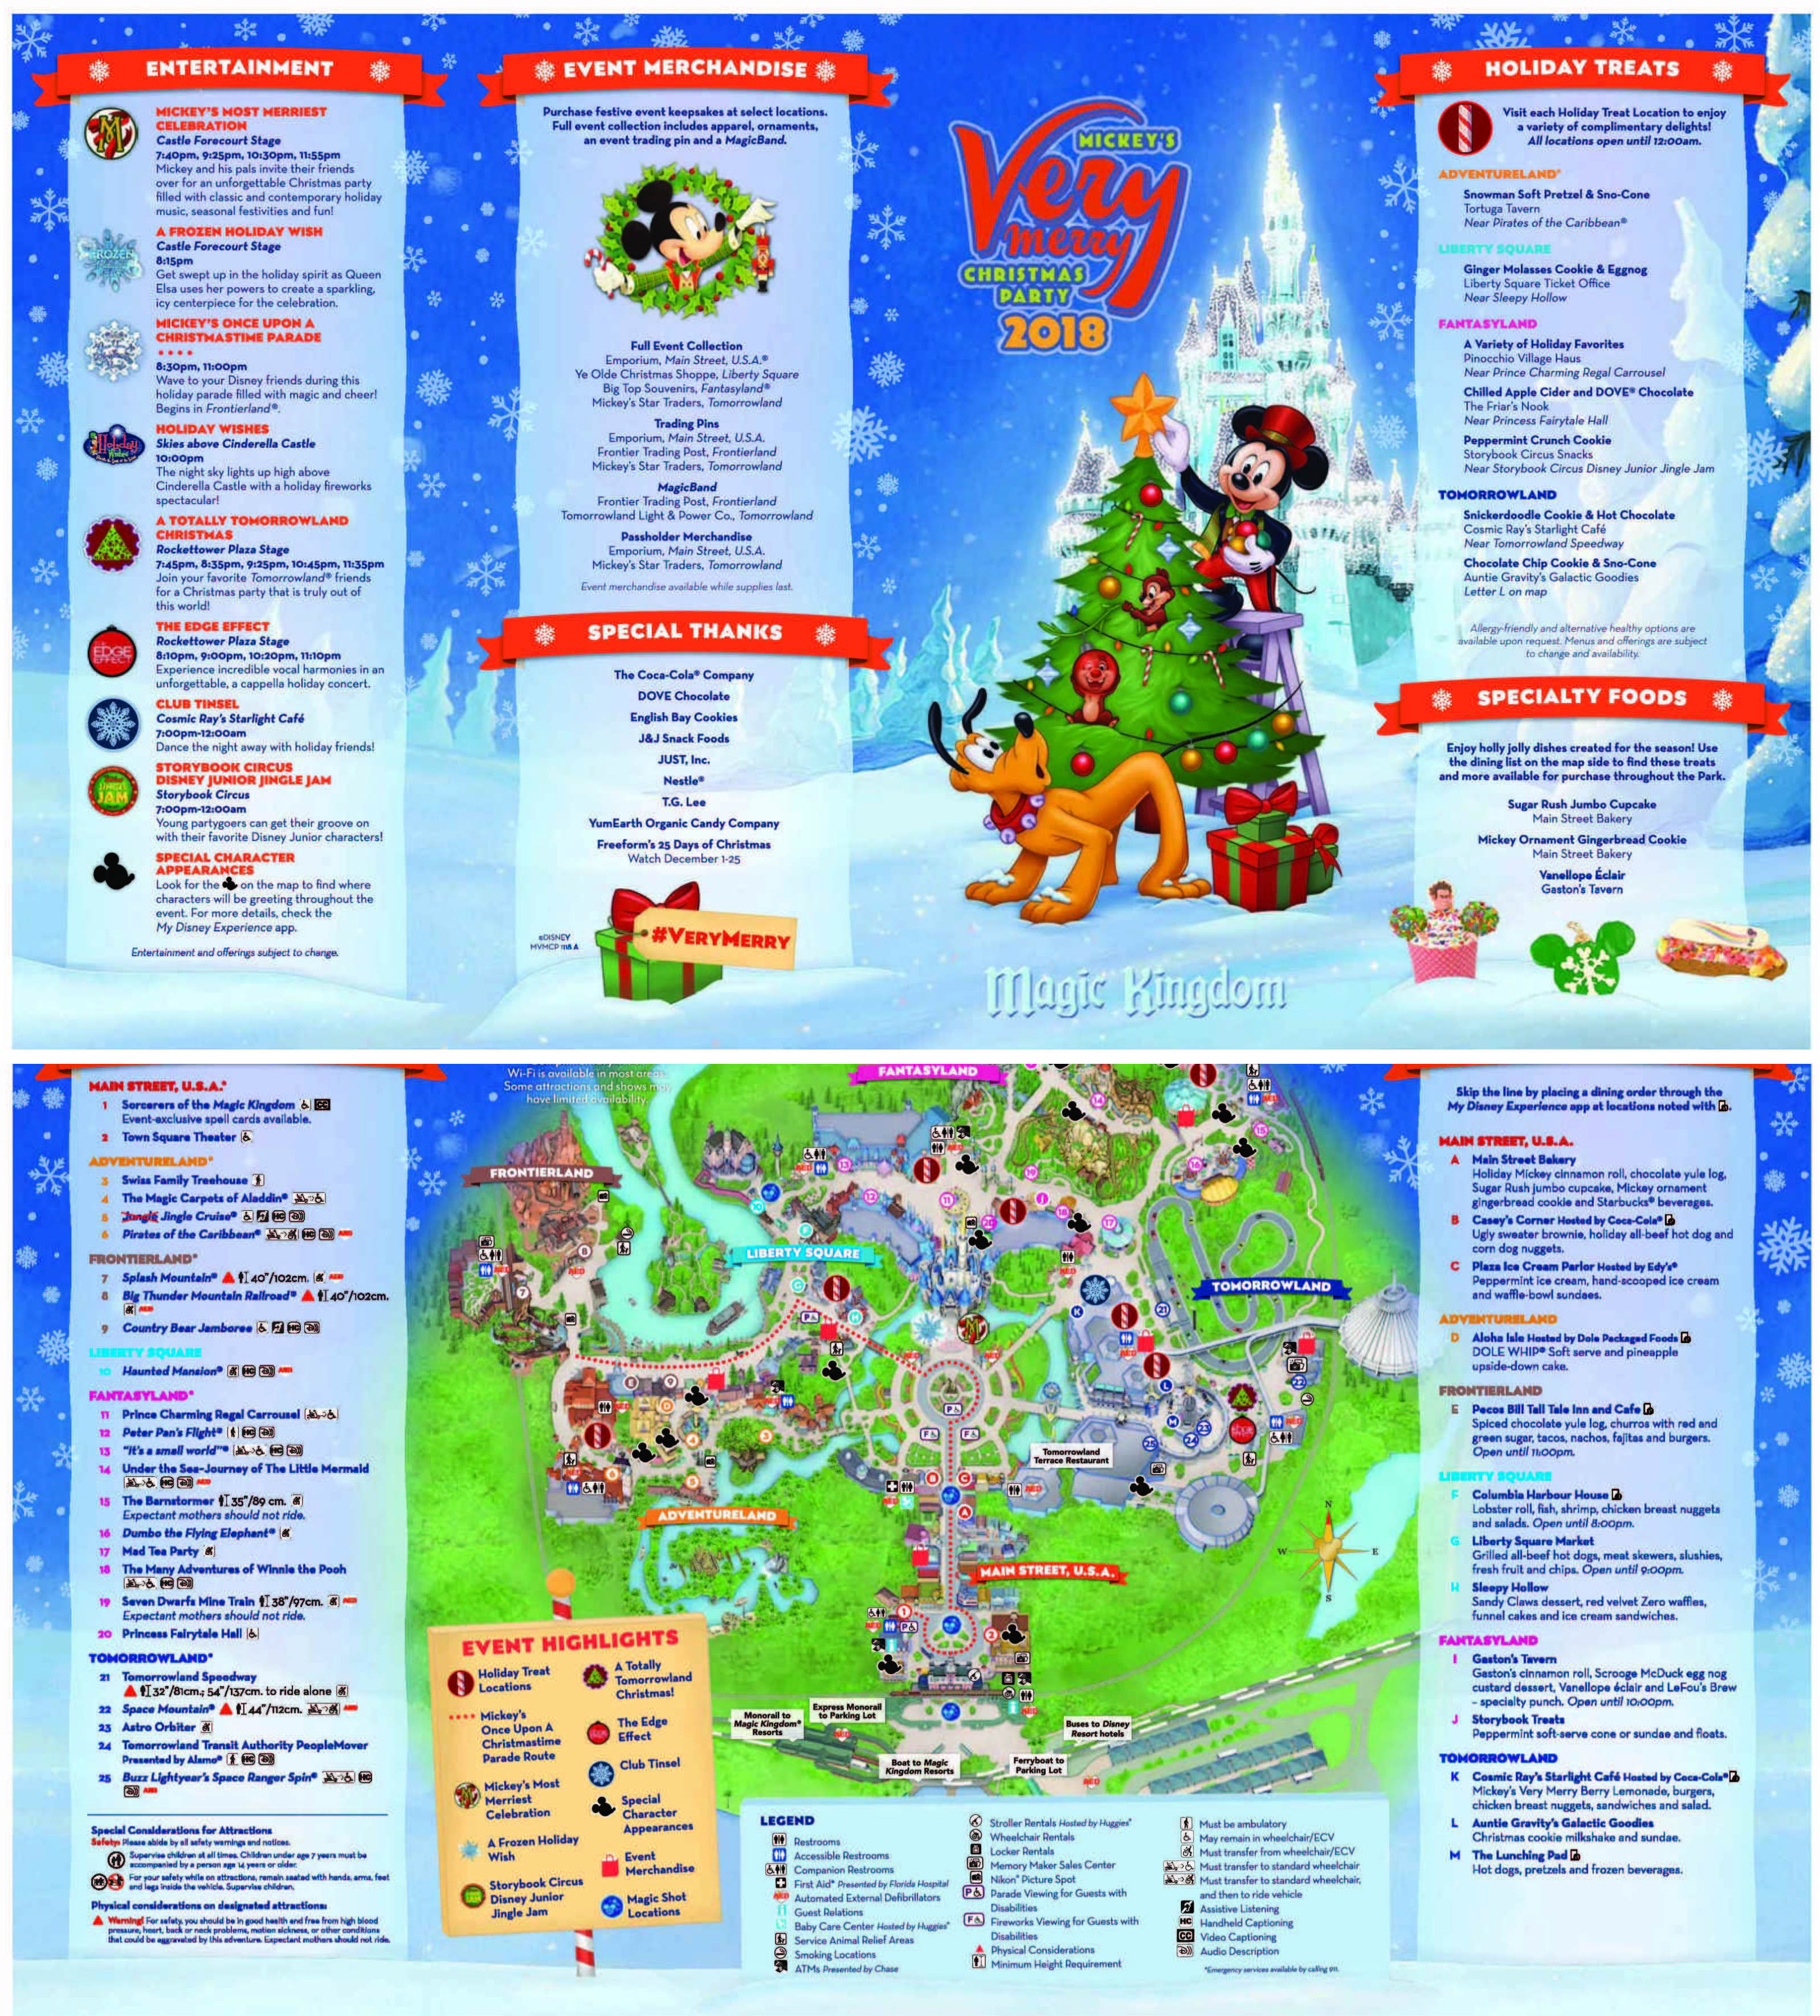 Mickey's Very Merry Christmas Party Guide (2019) • WDW Travels